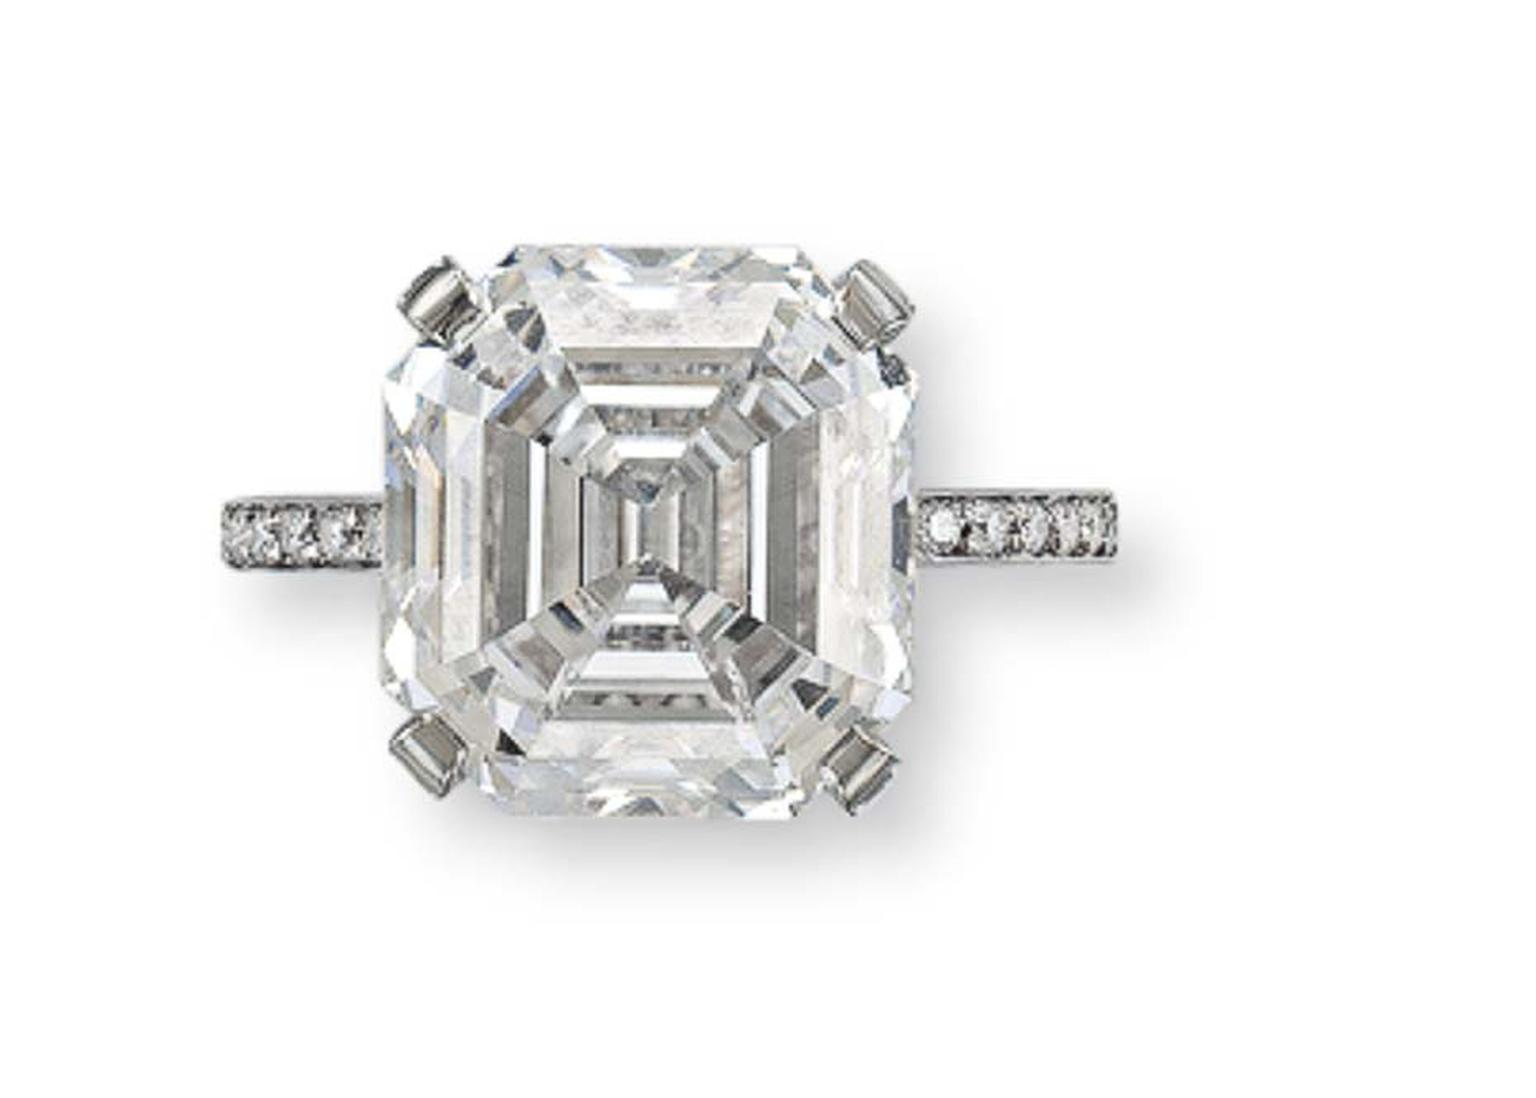 value single ring cut estimated stone flawless stock asscher internally diamond photo